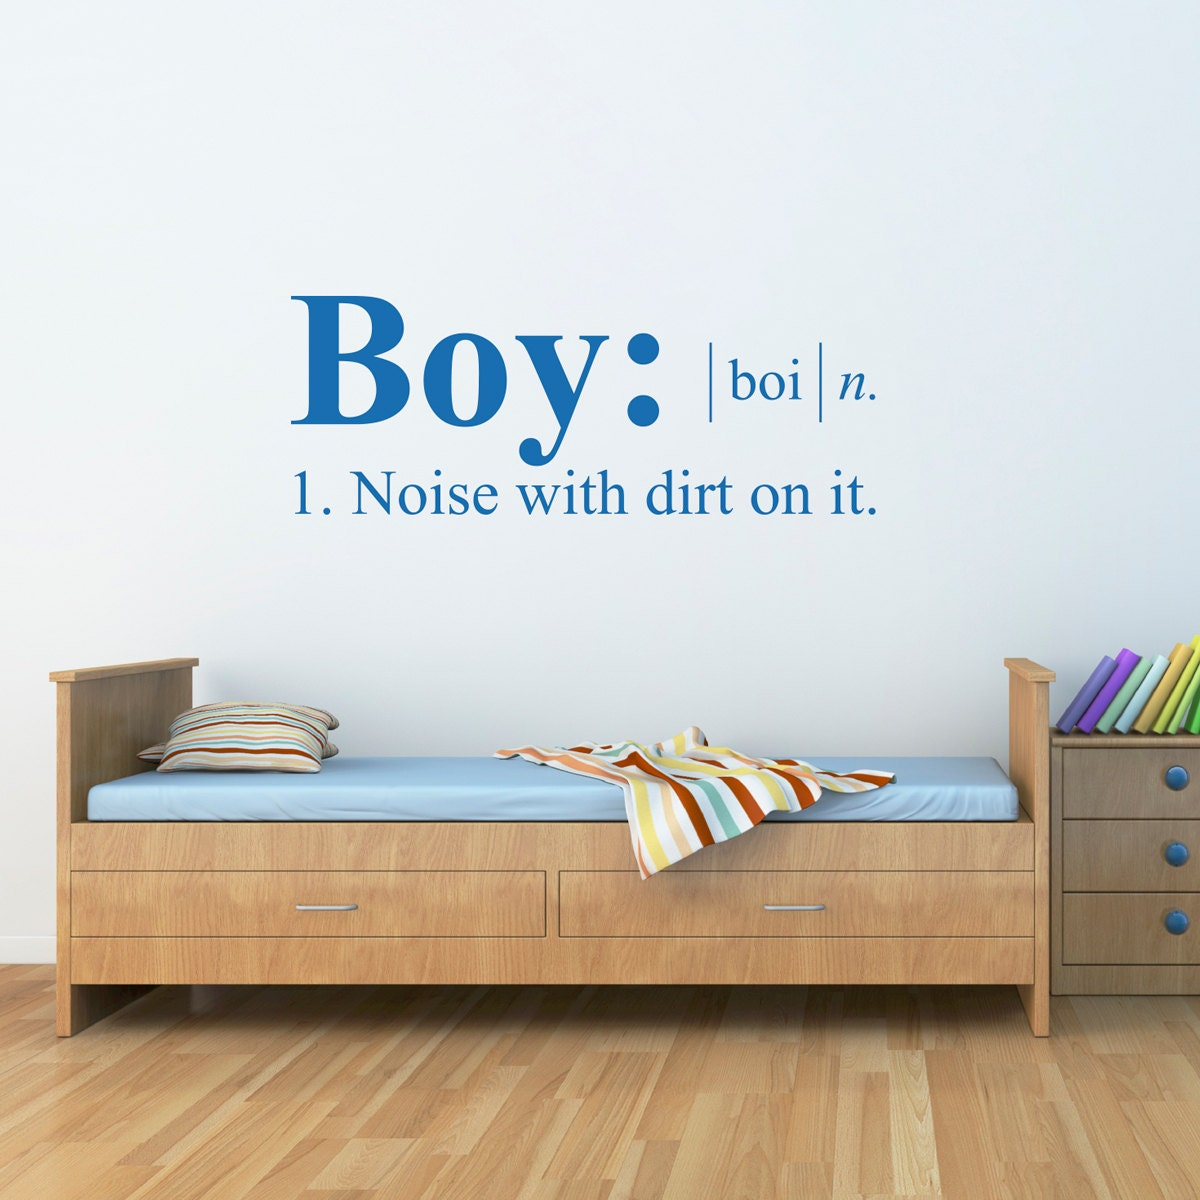 boy definition wall decal dictionary definition decal boy. Black Bedroom Furniture Sets. Home Design Ideas